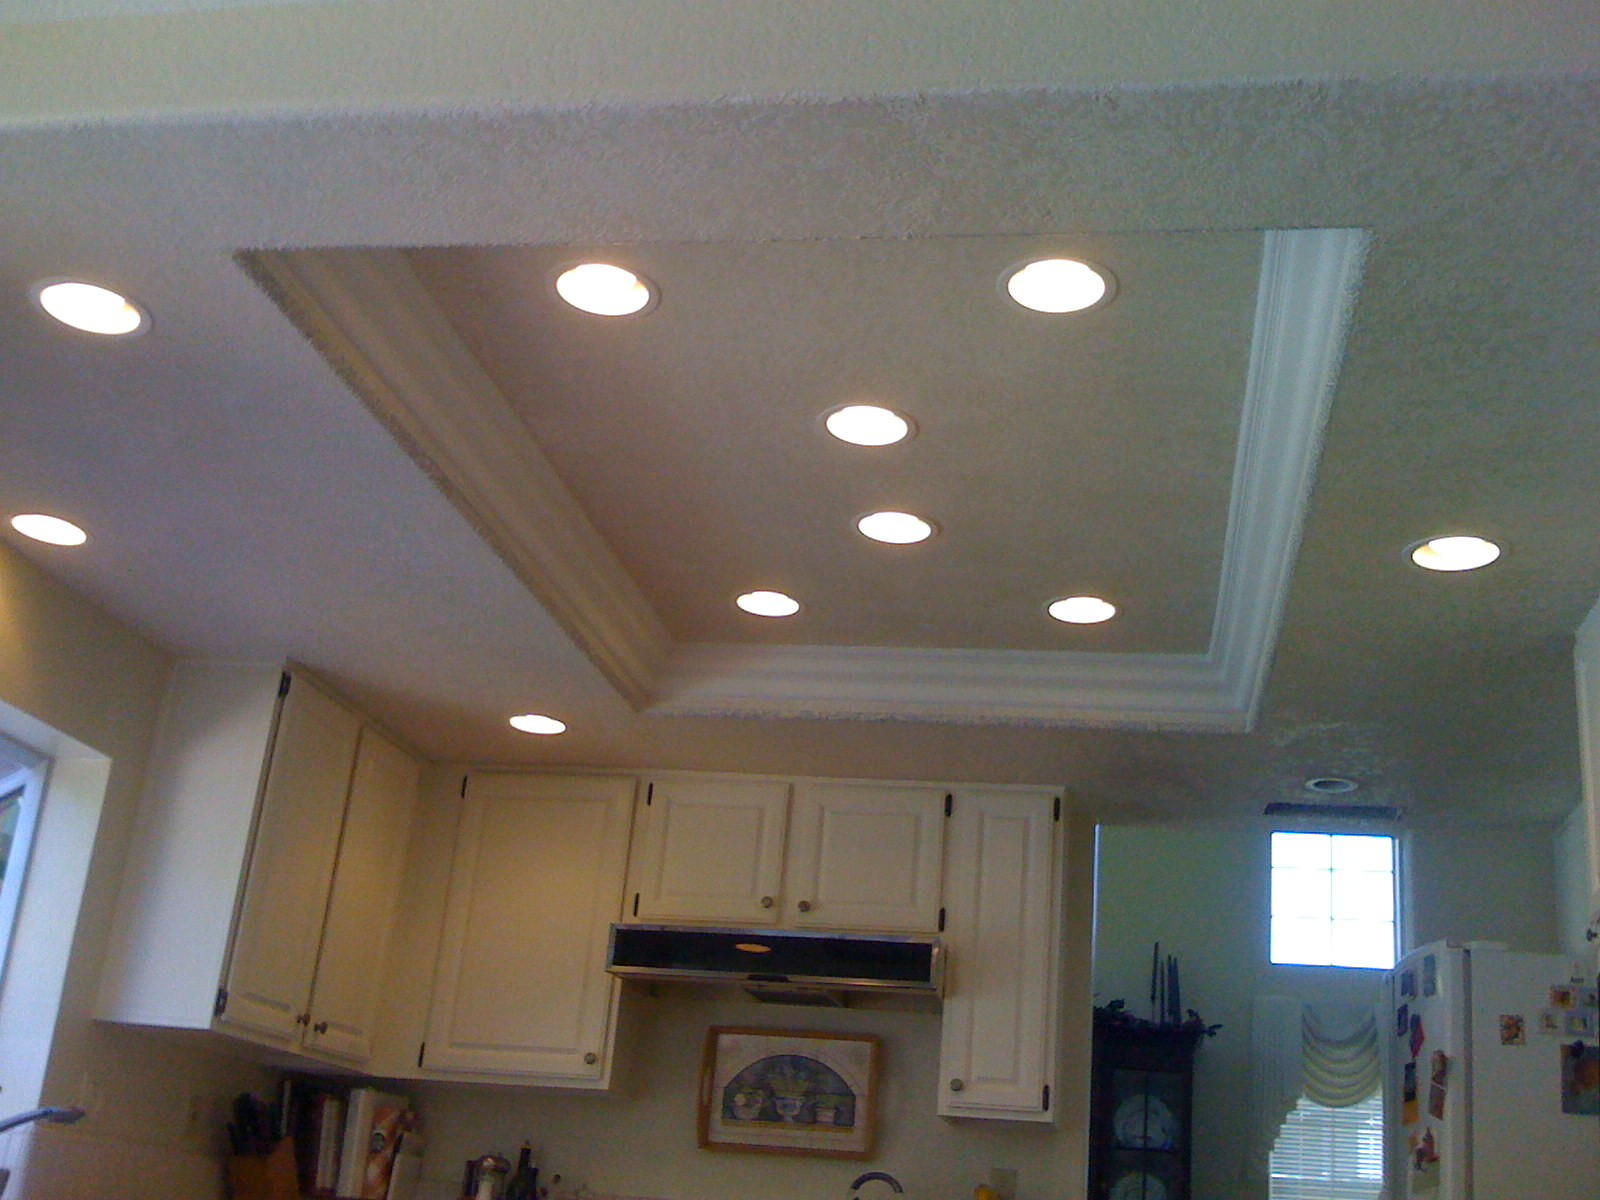 Best ideas about Ceiling Lights For Kitchen . Save or Pin Ideas Kitchen Drop Ceiling Lighting — Room Decors and Design Now.